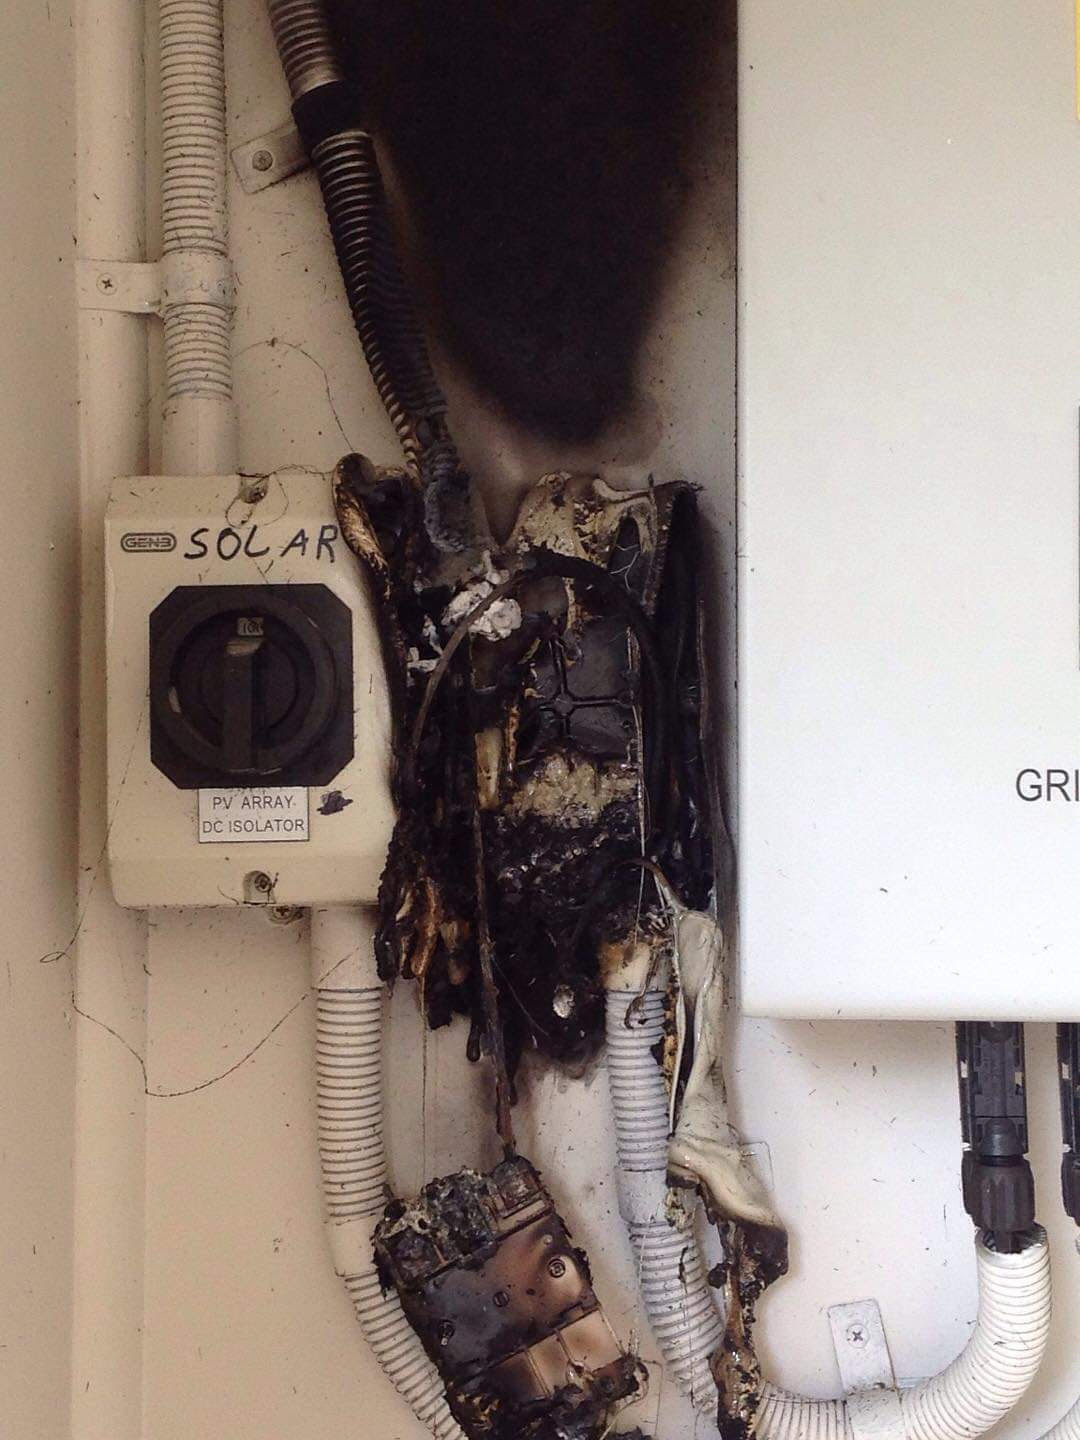 Fire damage caused by a faulty solar isolator